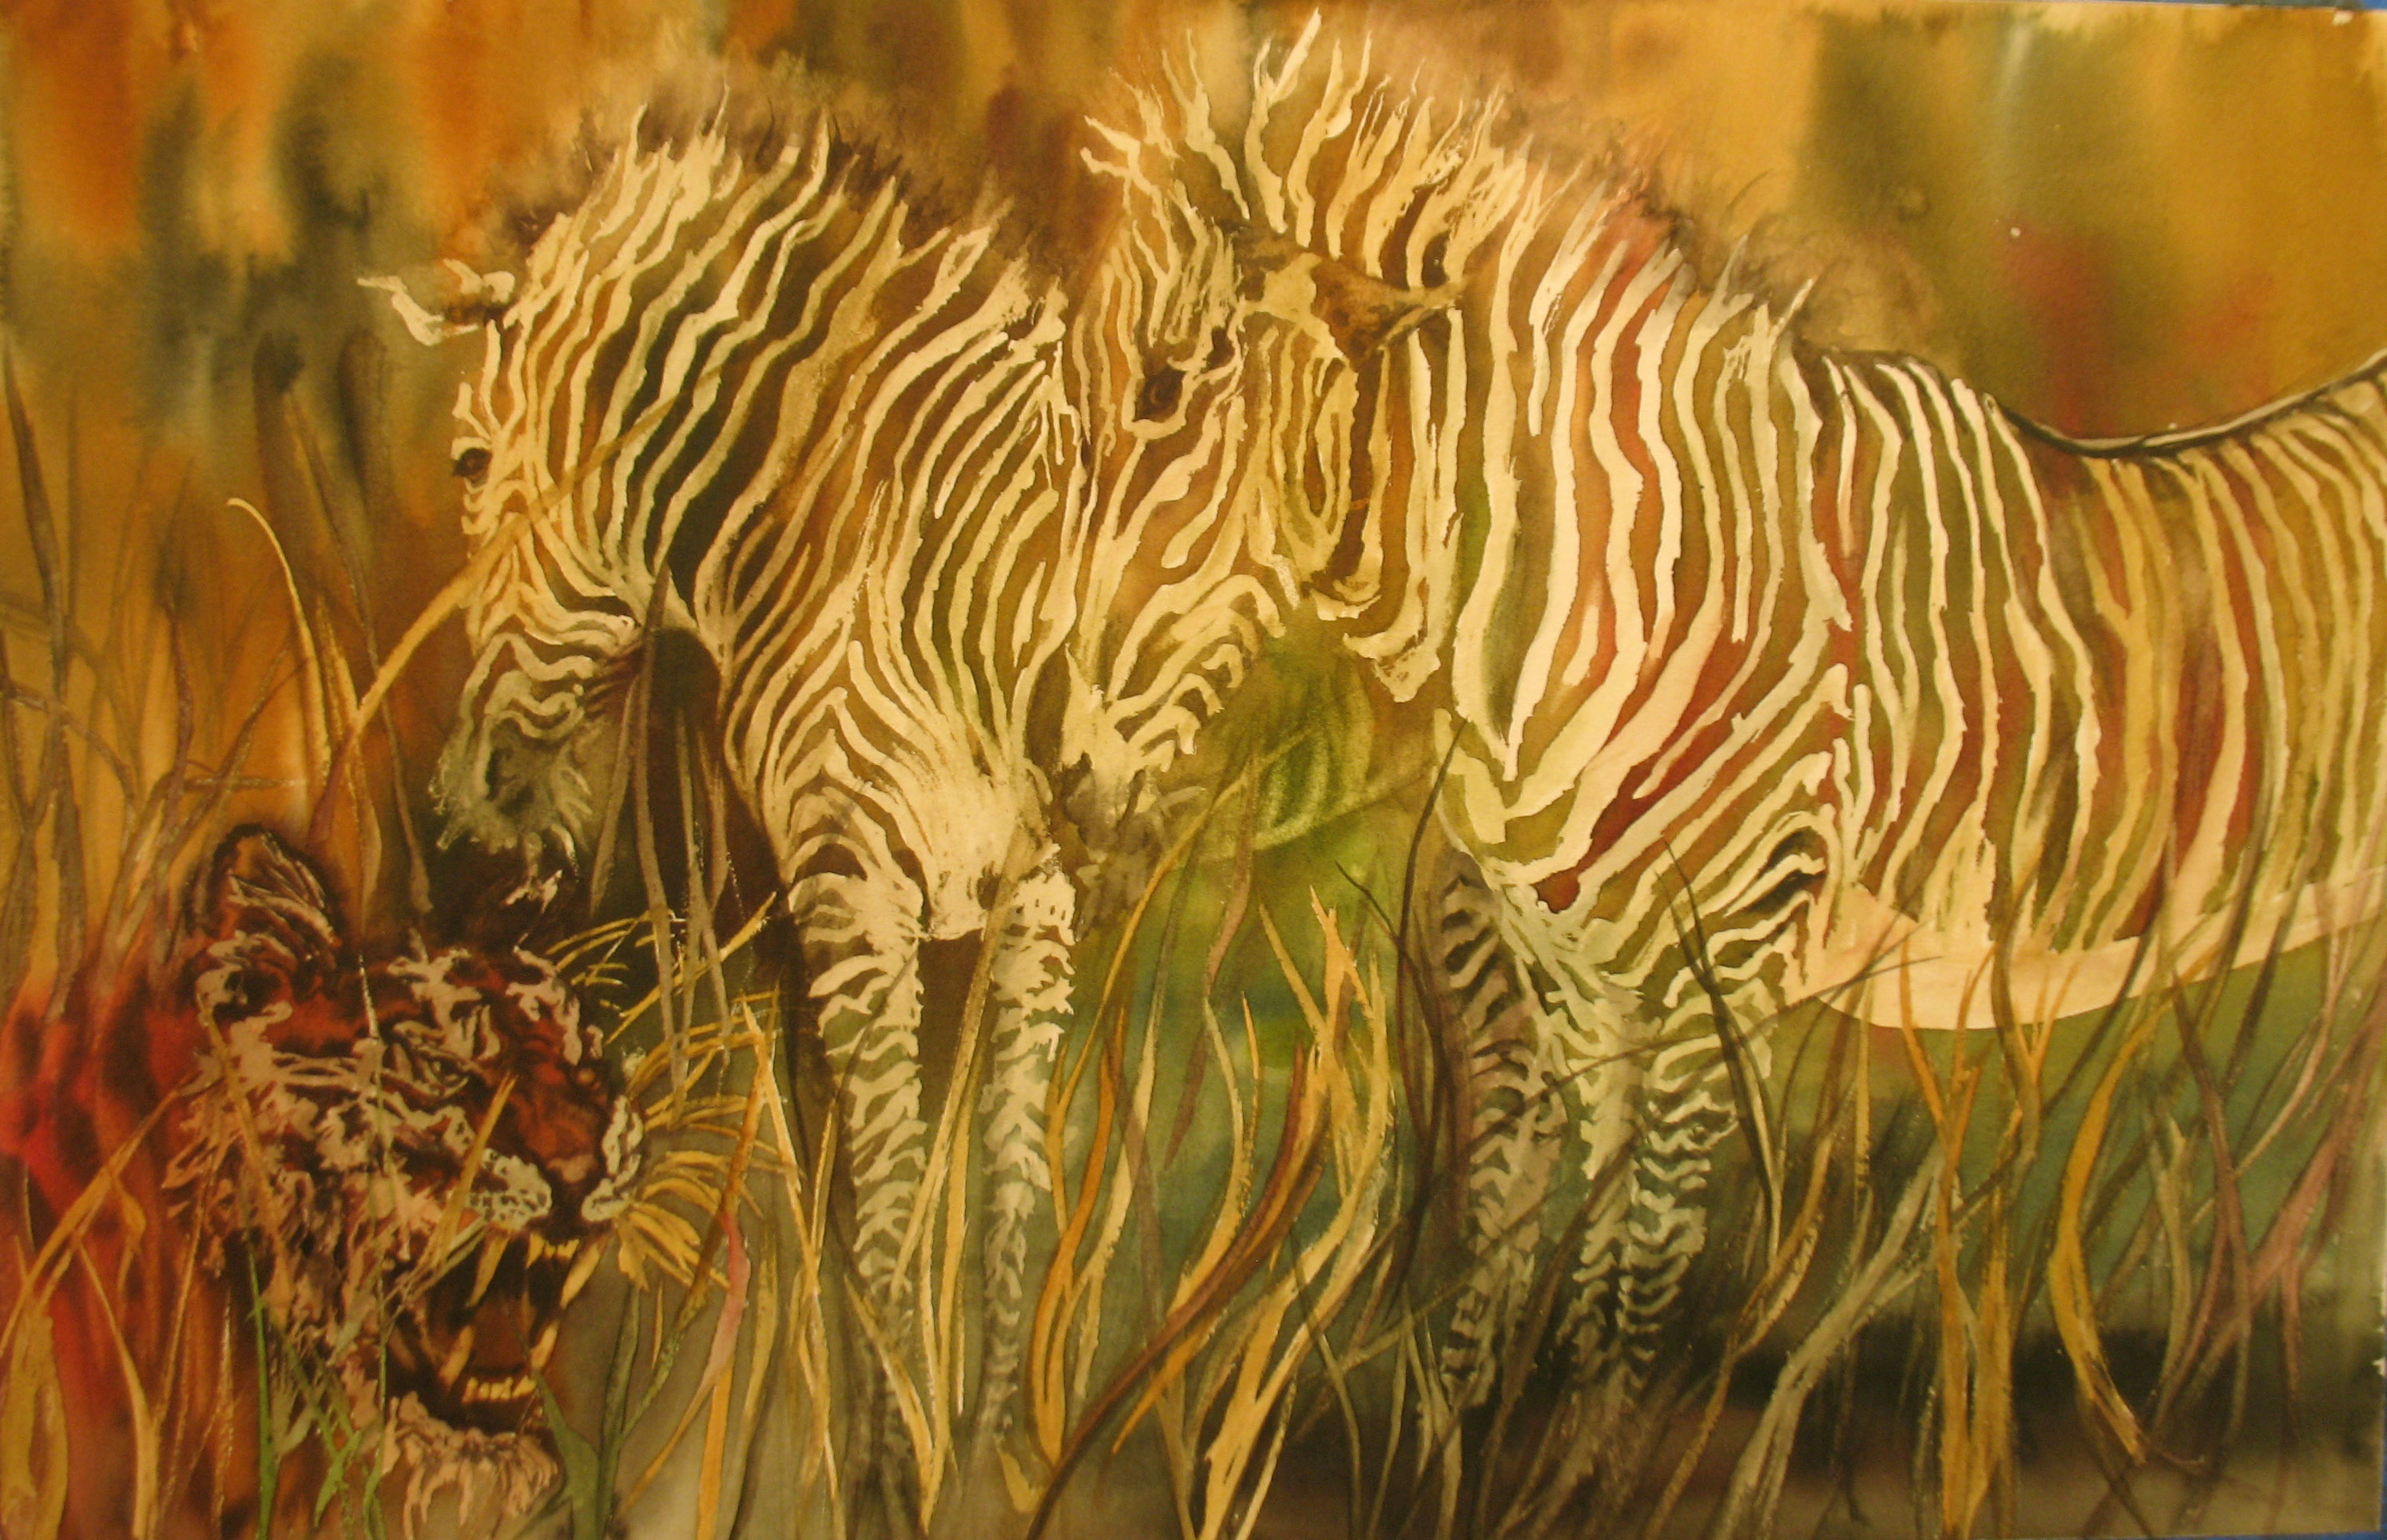 African Stripes, Watercolor,  19 1/2 x 26, $350.00